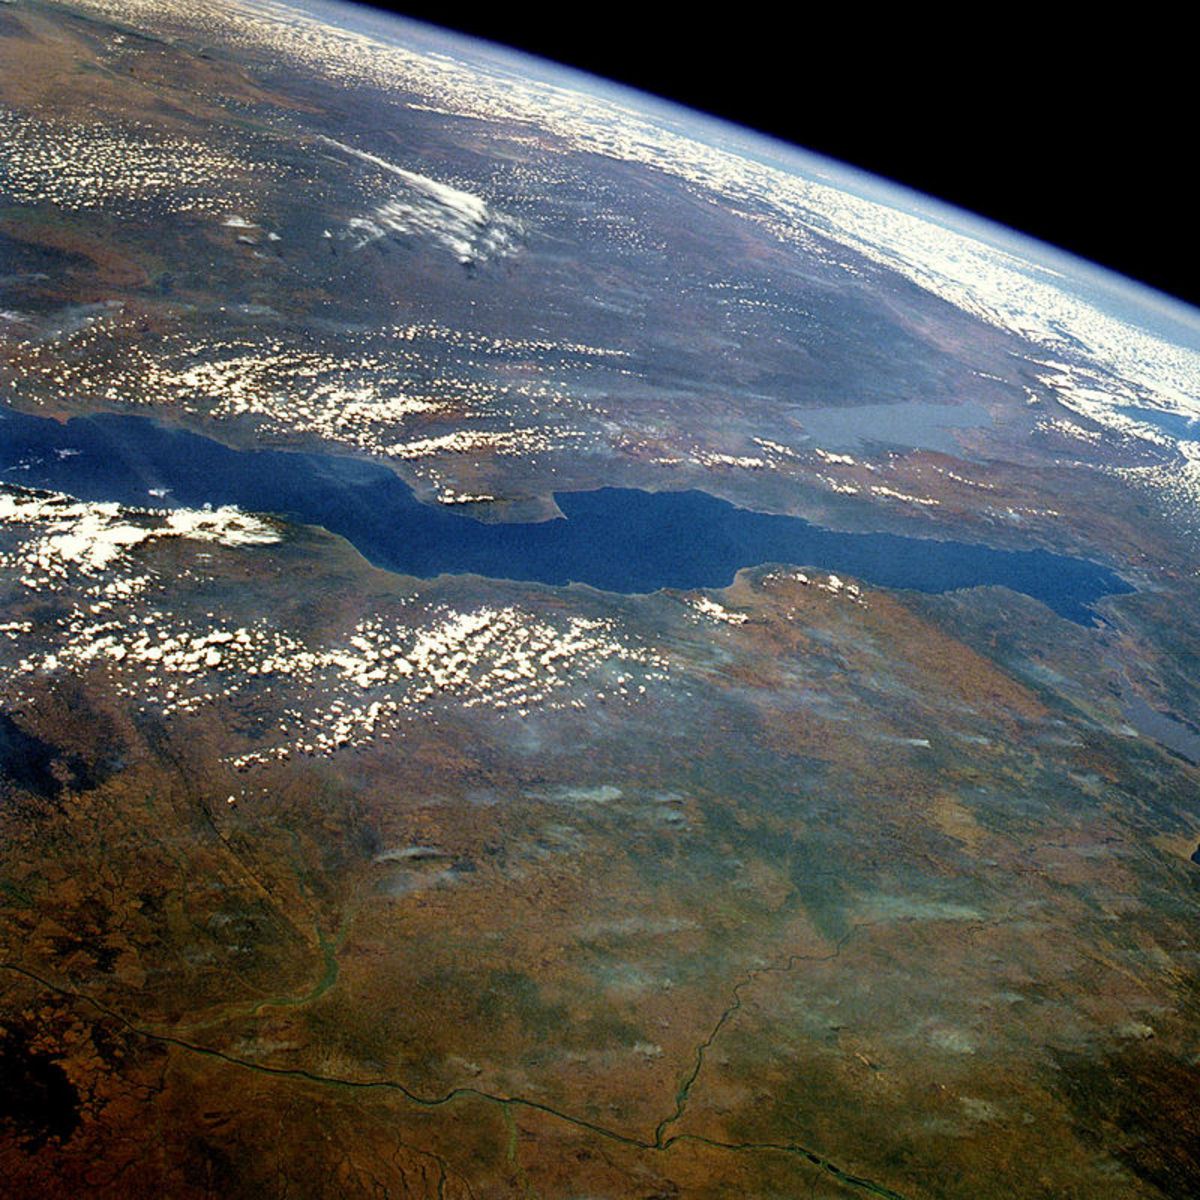 Orbital view of Lake Tanganyika